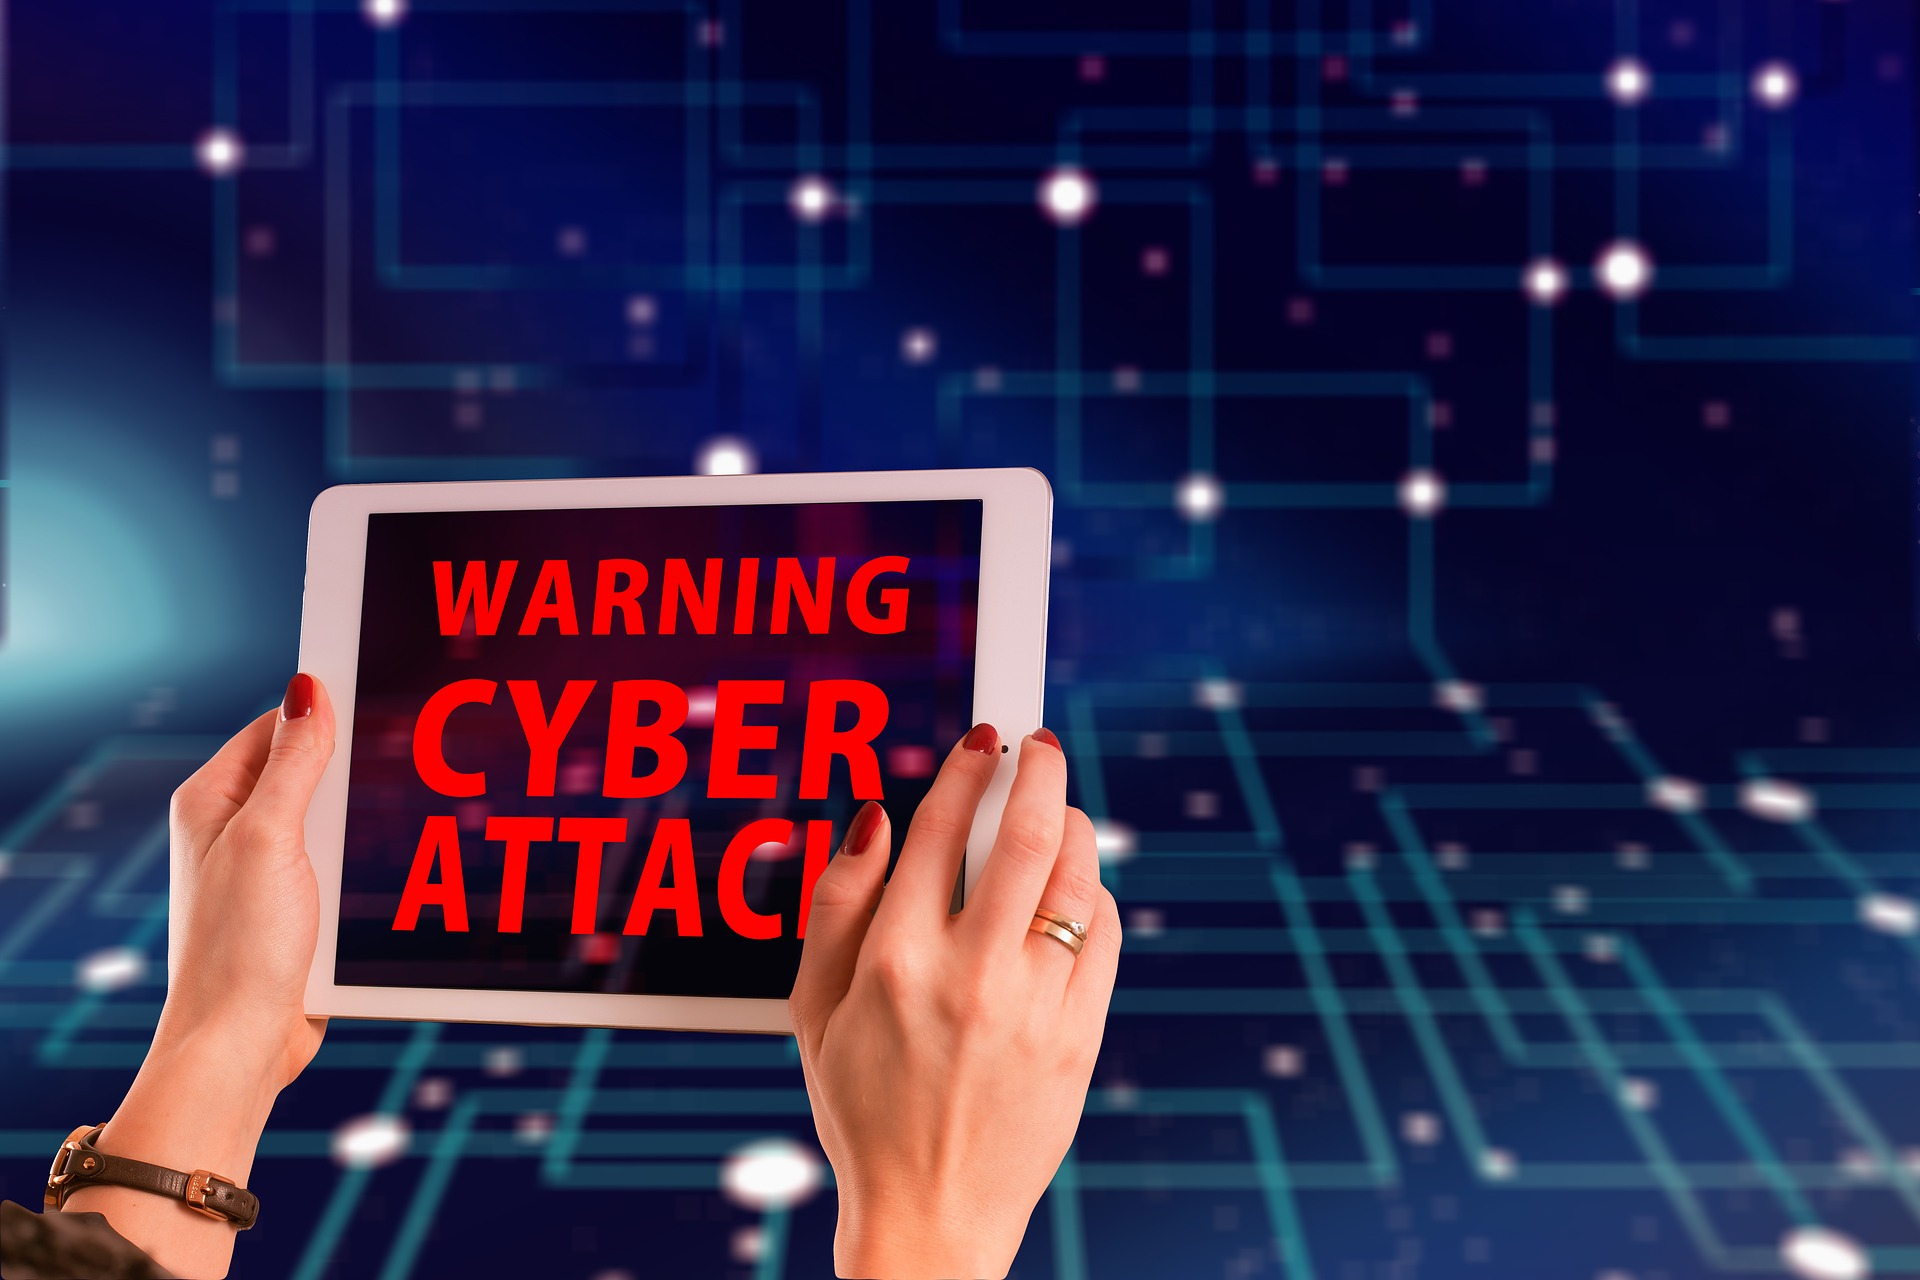 Fear of Cyber Attacks Hinder Mobility, Digitalization and Malaysia's Economic Growth